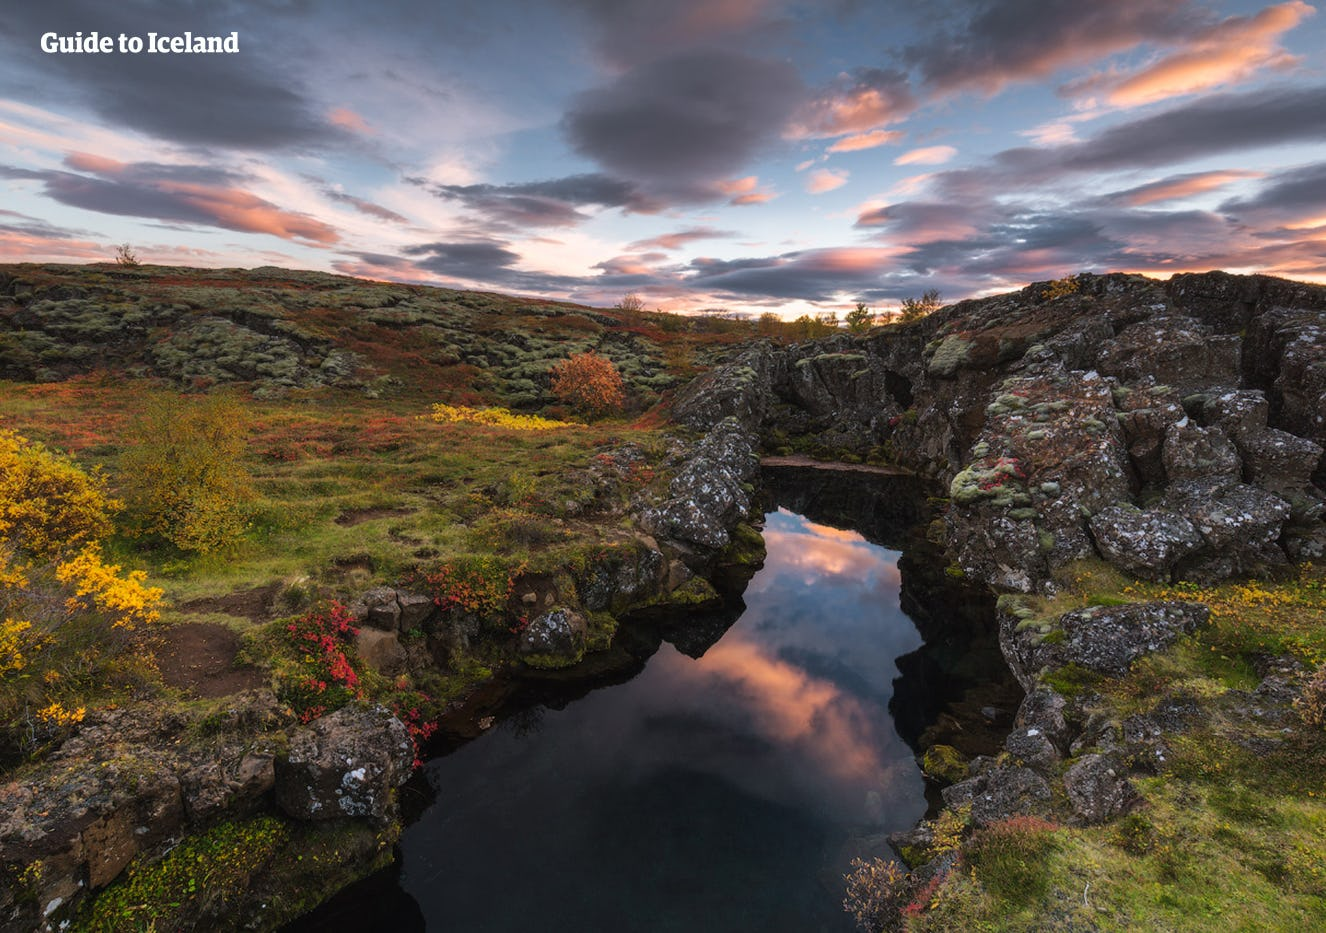 Þingvellir is famed for its beautiful scenery, rocky glacial springs, fields of Icelandic moss and dramatic tectonic canyons.